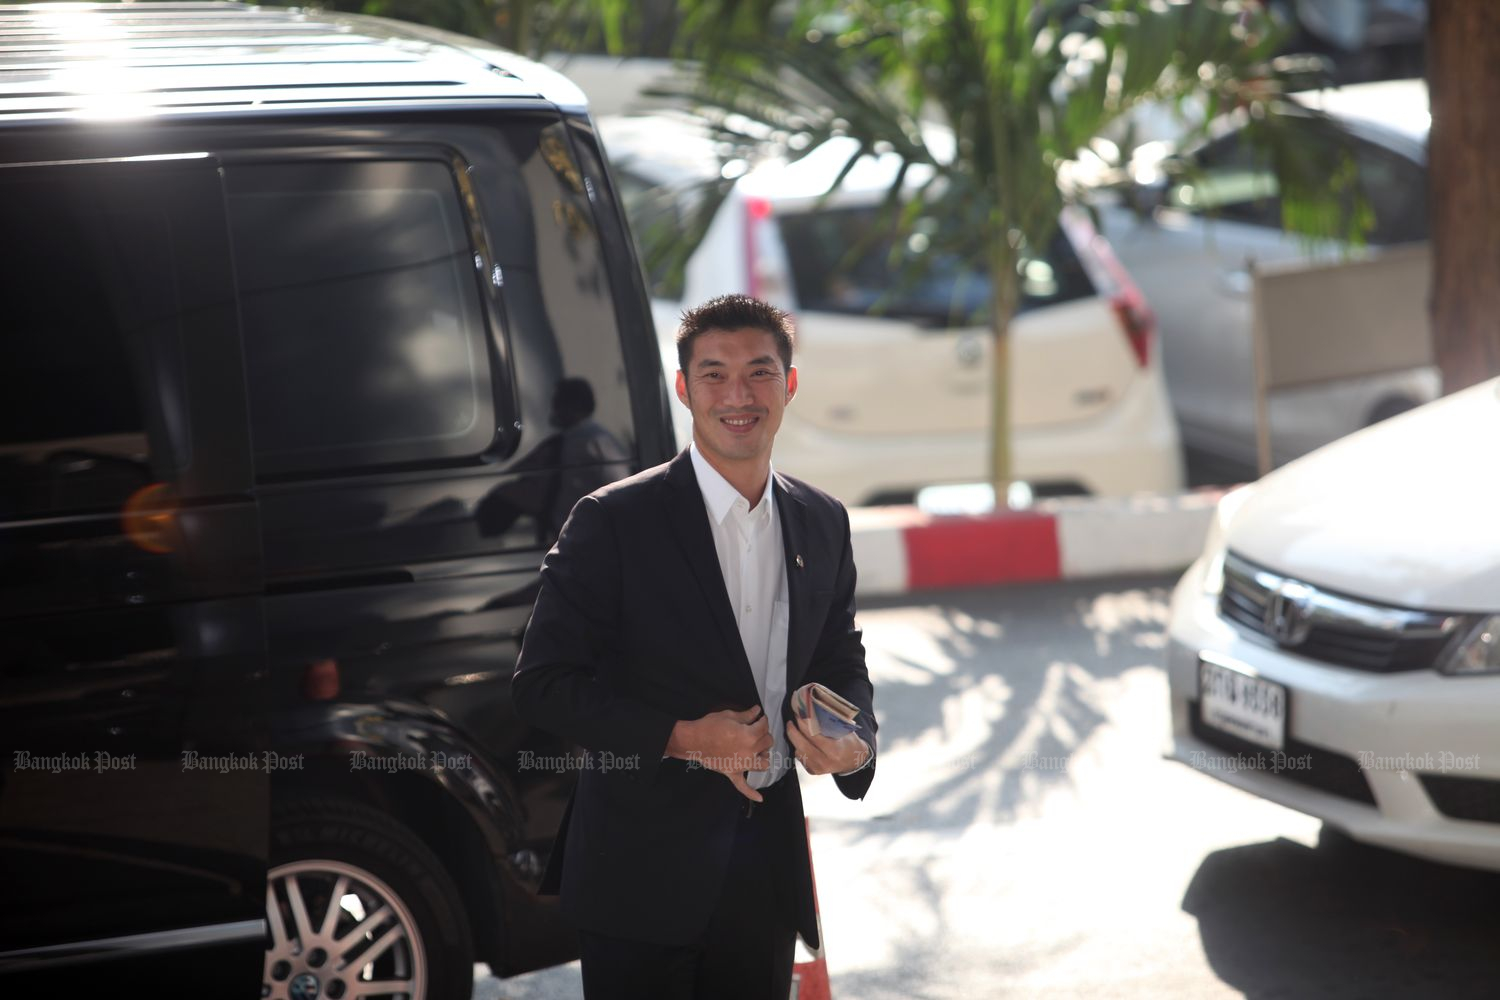 Thanathorn Juangroongruangkit, chairman of the Progressive Movement, arrives at the Criminal Court to attend a hearing on his plea for the lift of a ban on his video clips criticising the government's vaccine policy on Feb 4 this year. (Photo by Apichart Jinakul)